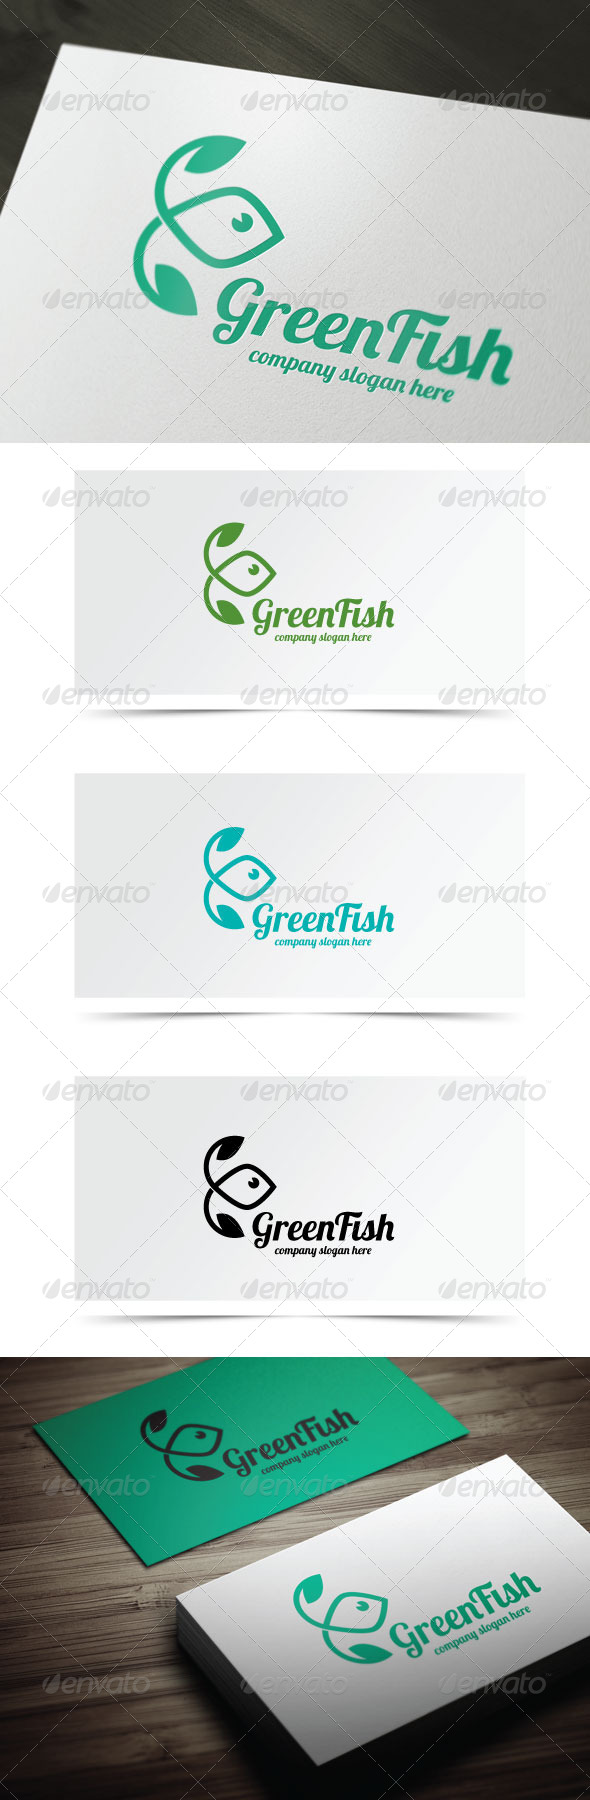 GraphicRiver Green Fish 6704845